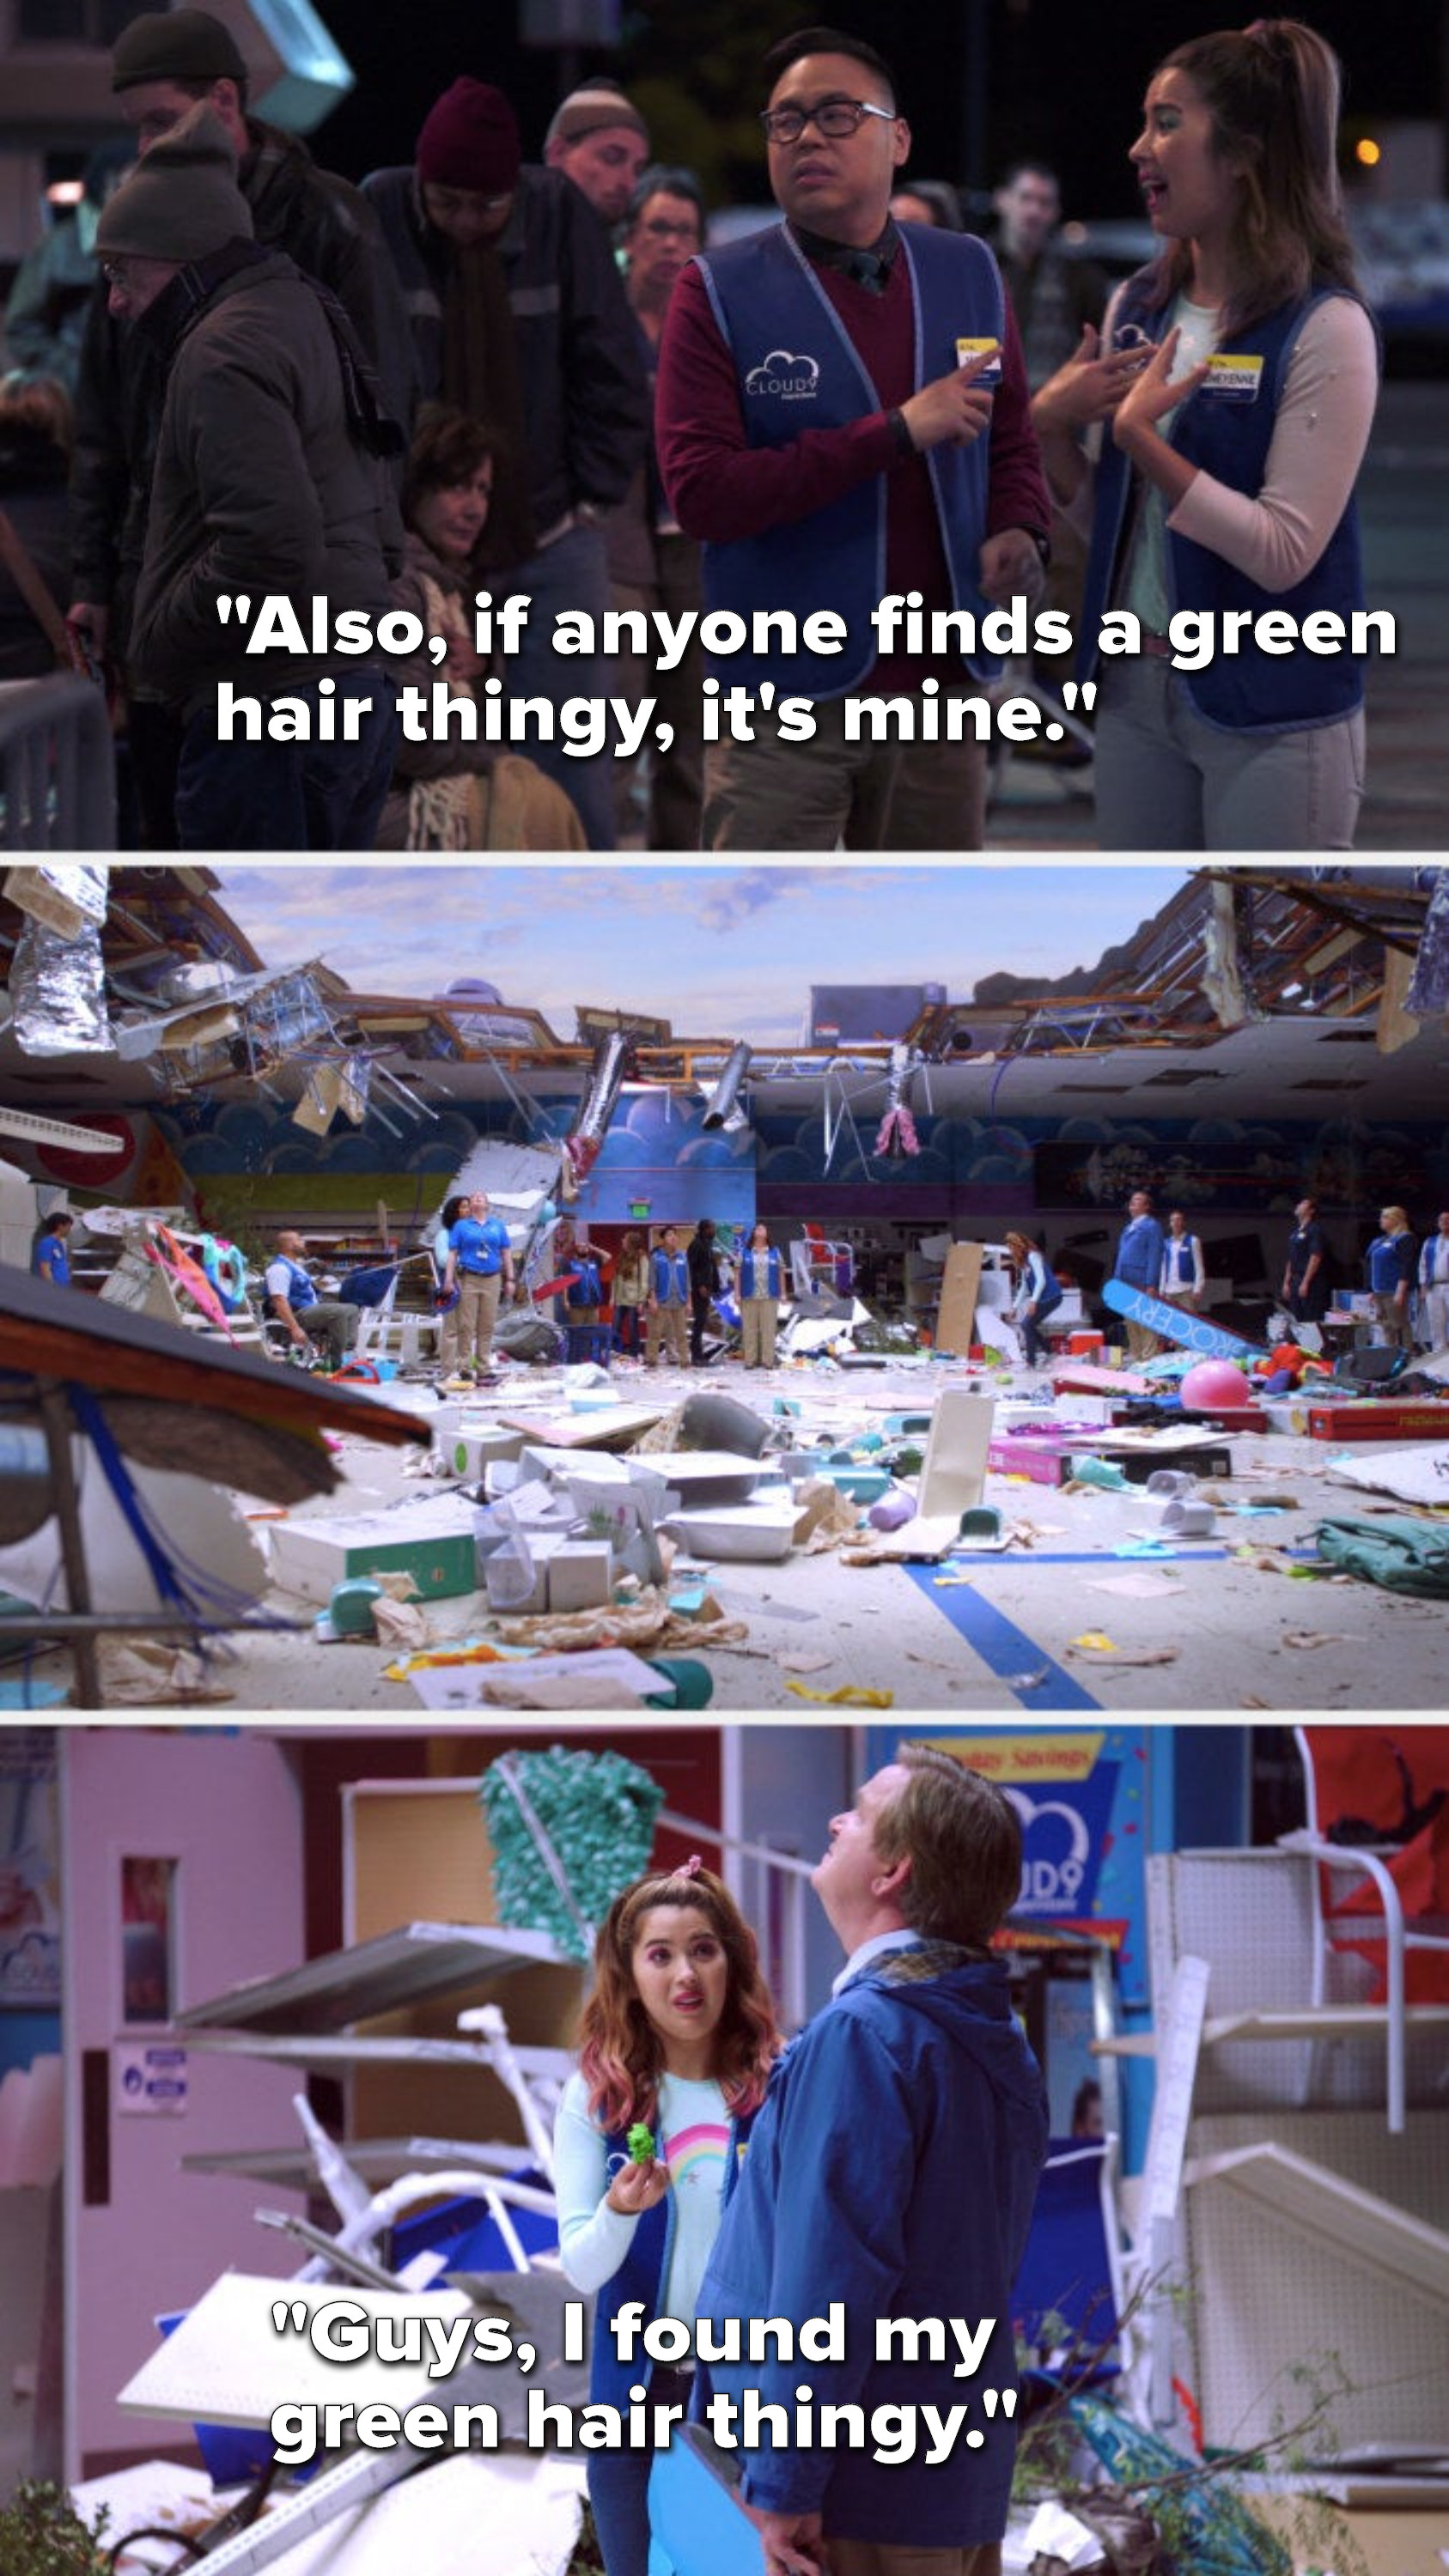 """Cheyenne says, """"Also, if anyone finds a green hair thingy, it's mine, I dropped it on the way in,"""" then she finds it in a later episode and says, Guys, I found my green hair thingy"""""""